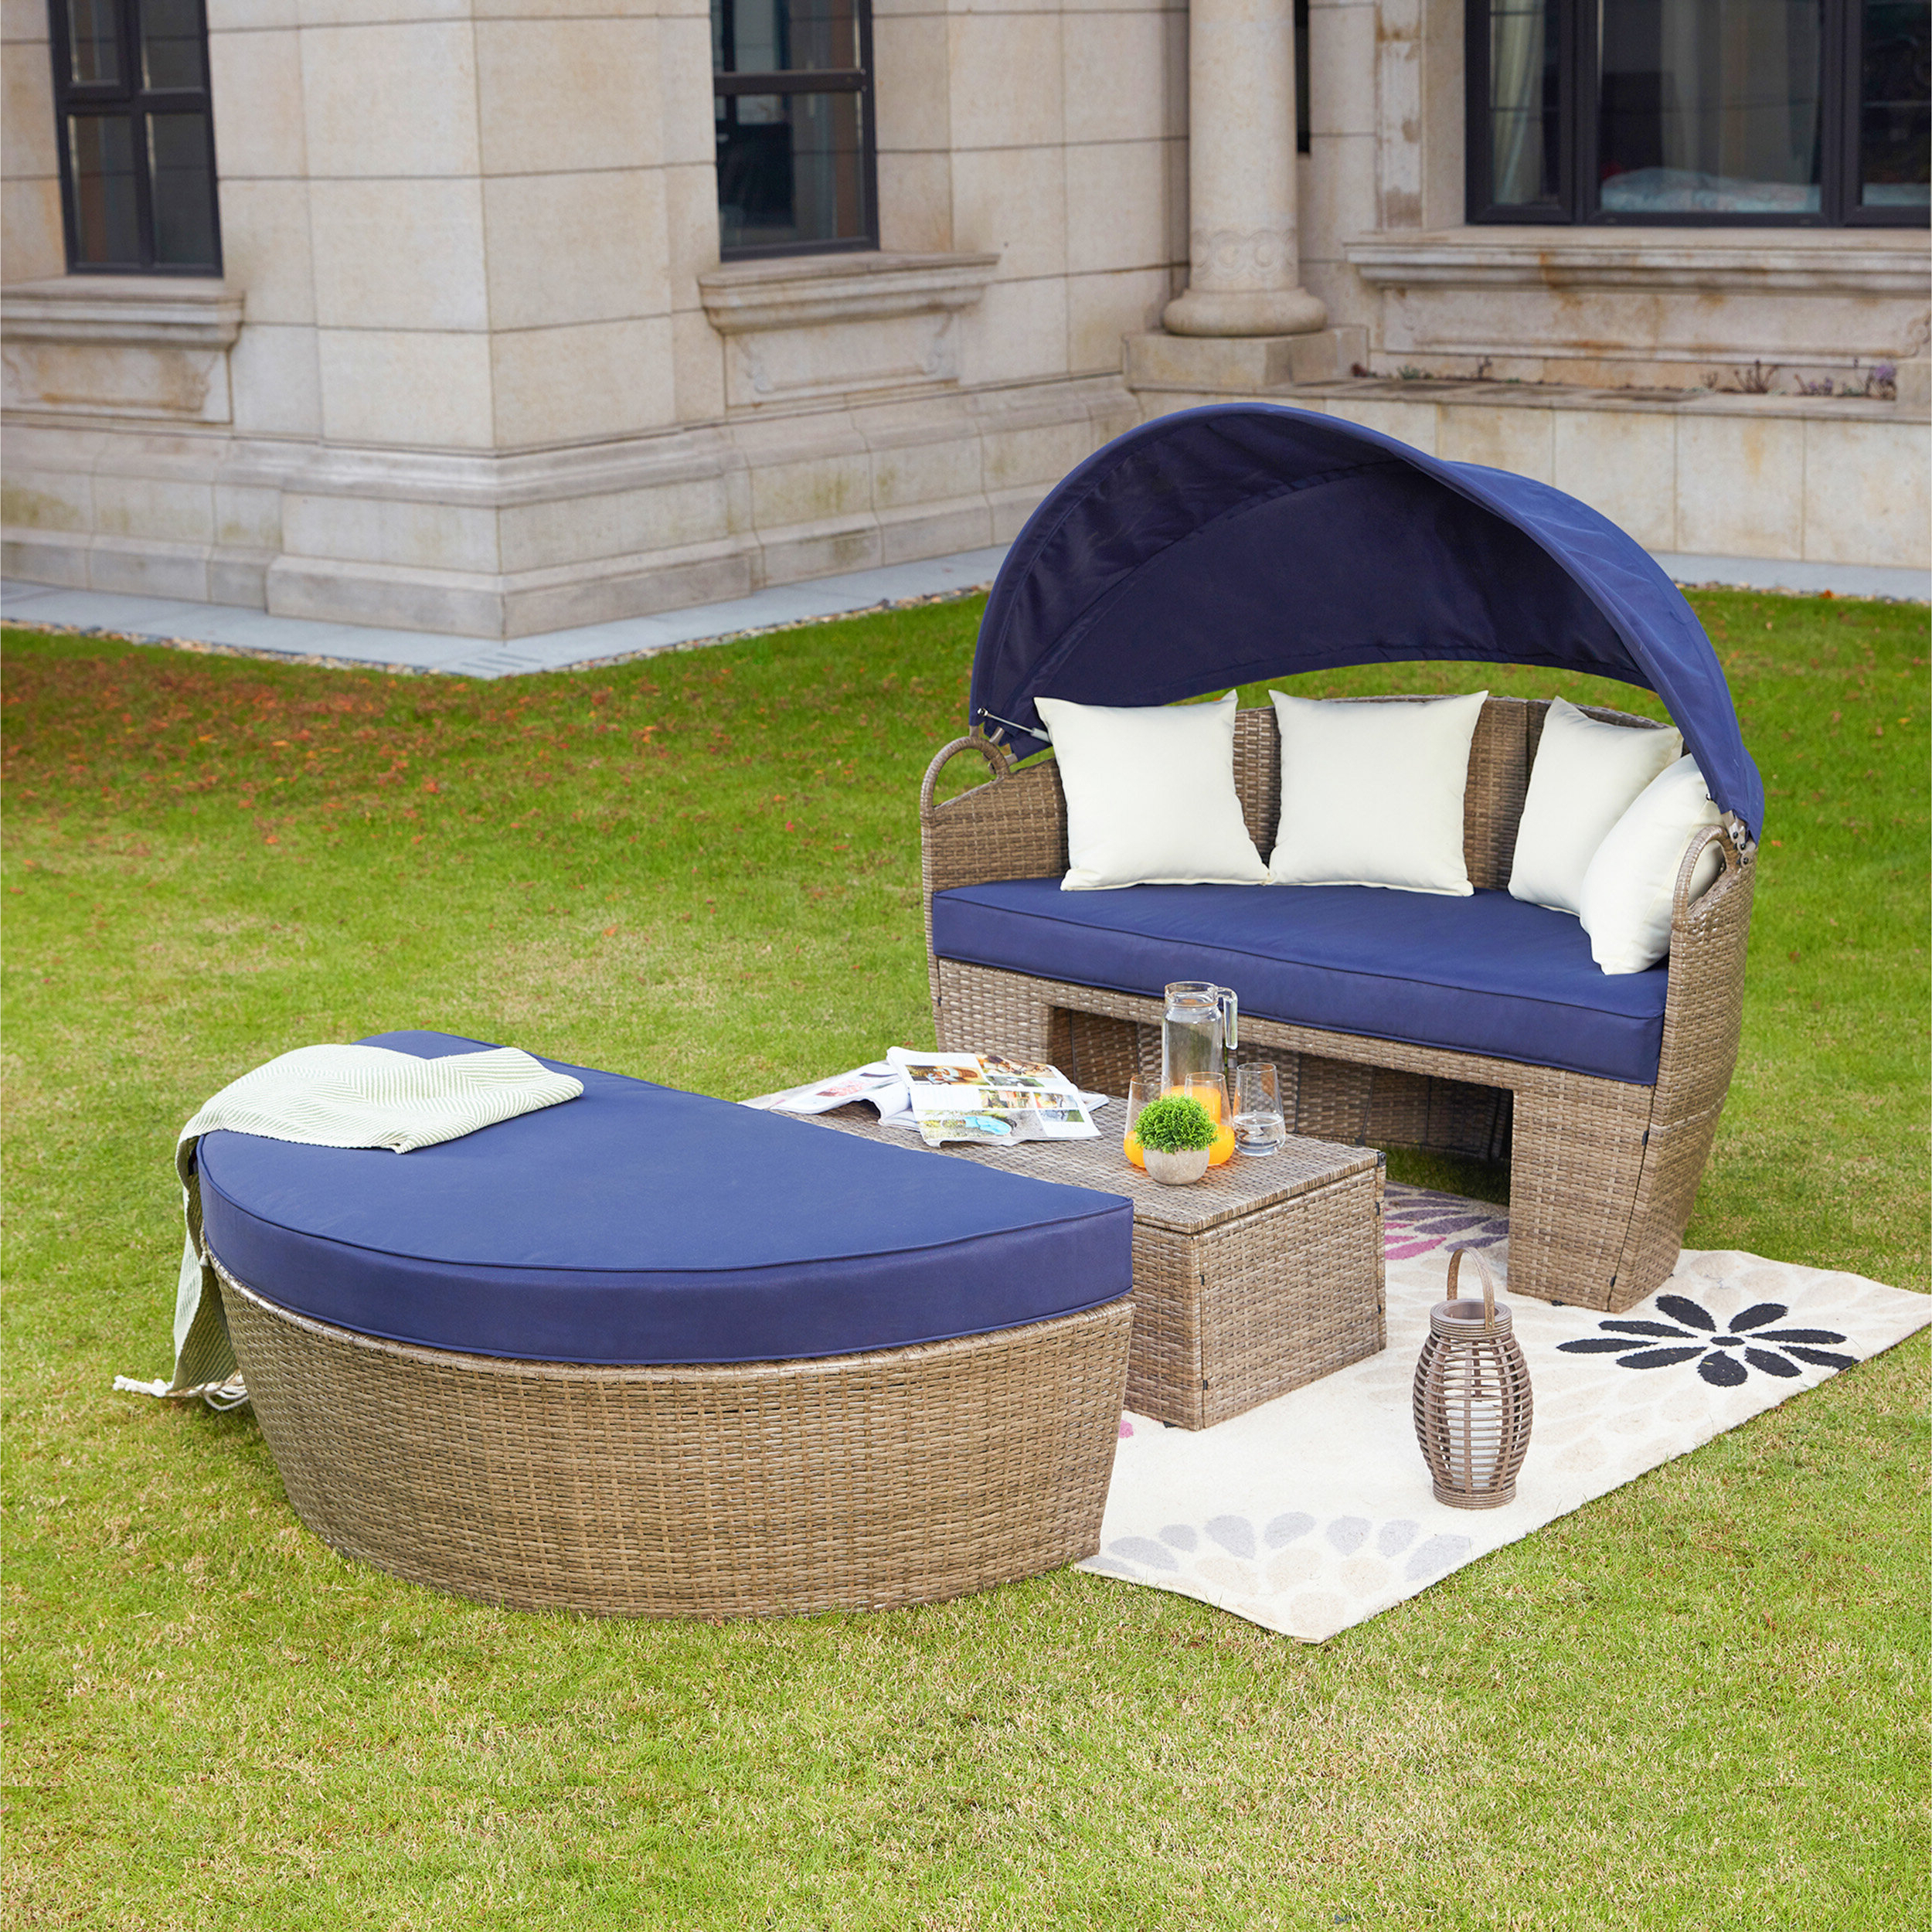 Lammers Outdoor Wicker Daybeds With Cushions With Best And Newest Fansler Patio Daybed With Cushions (View 13 of 20)